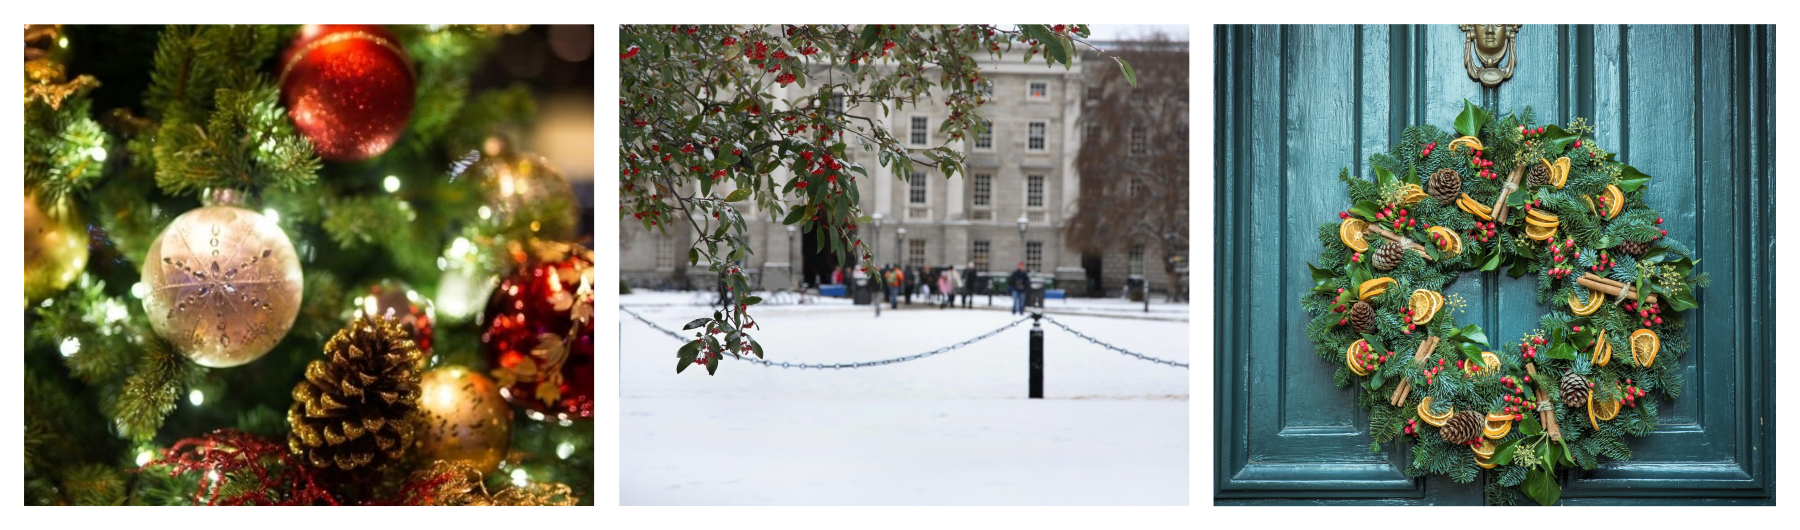 Christmas Commons for Alumni & Friends - 11 December 2019